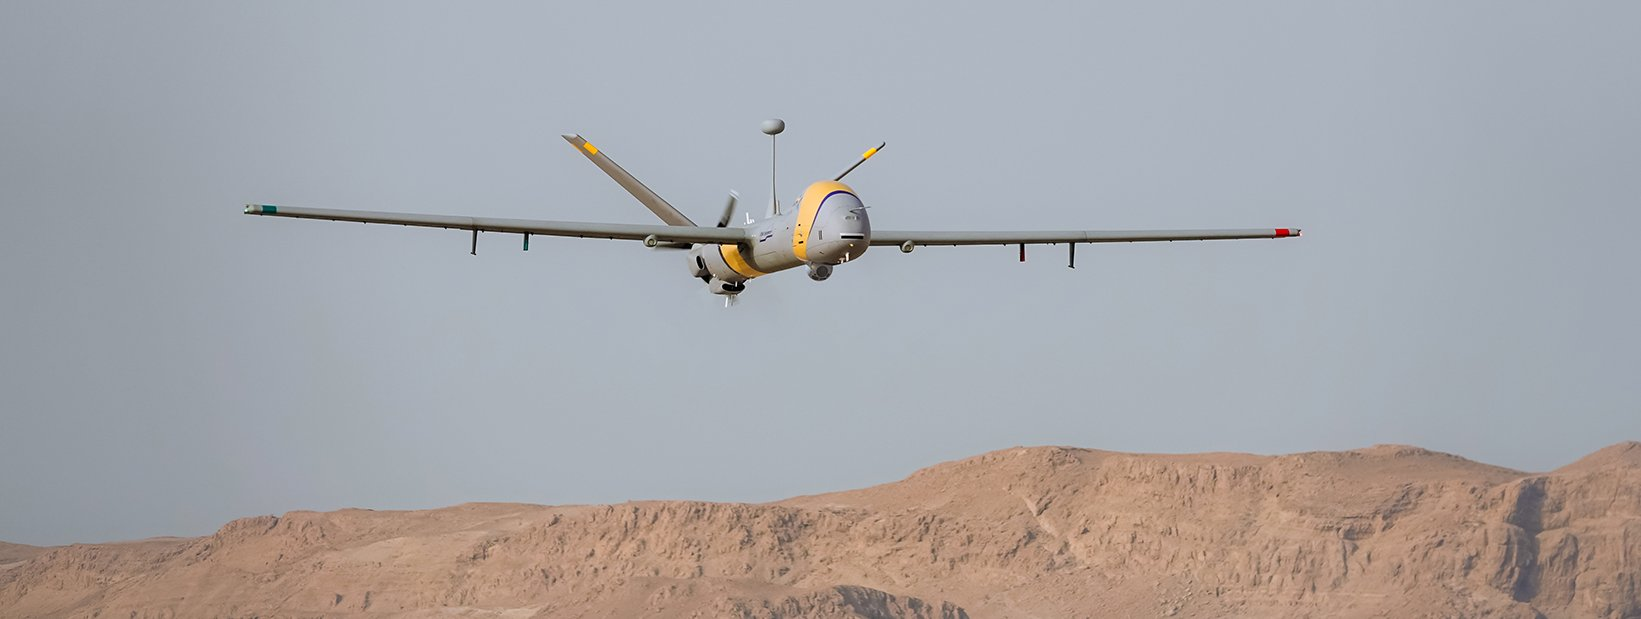 Picture of the StarLiner, a remotely piloted aircraft, about to land.